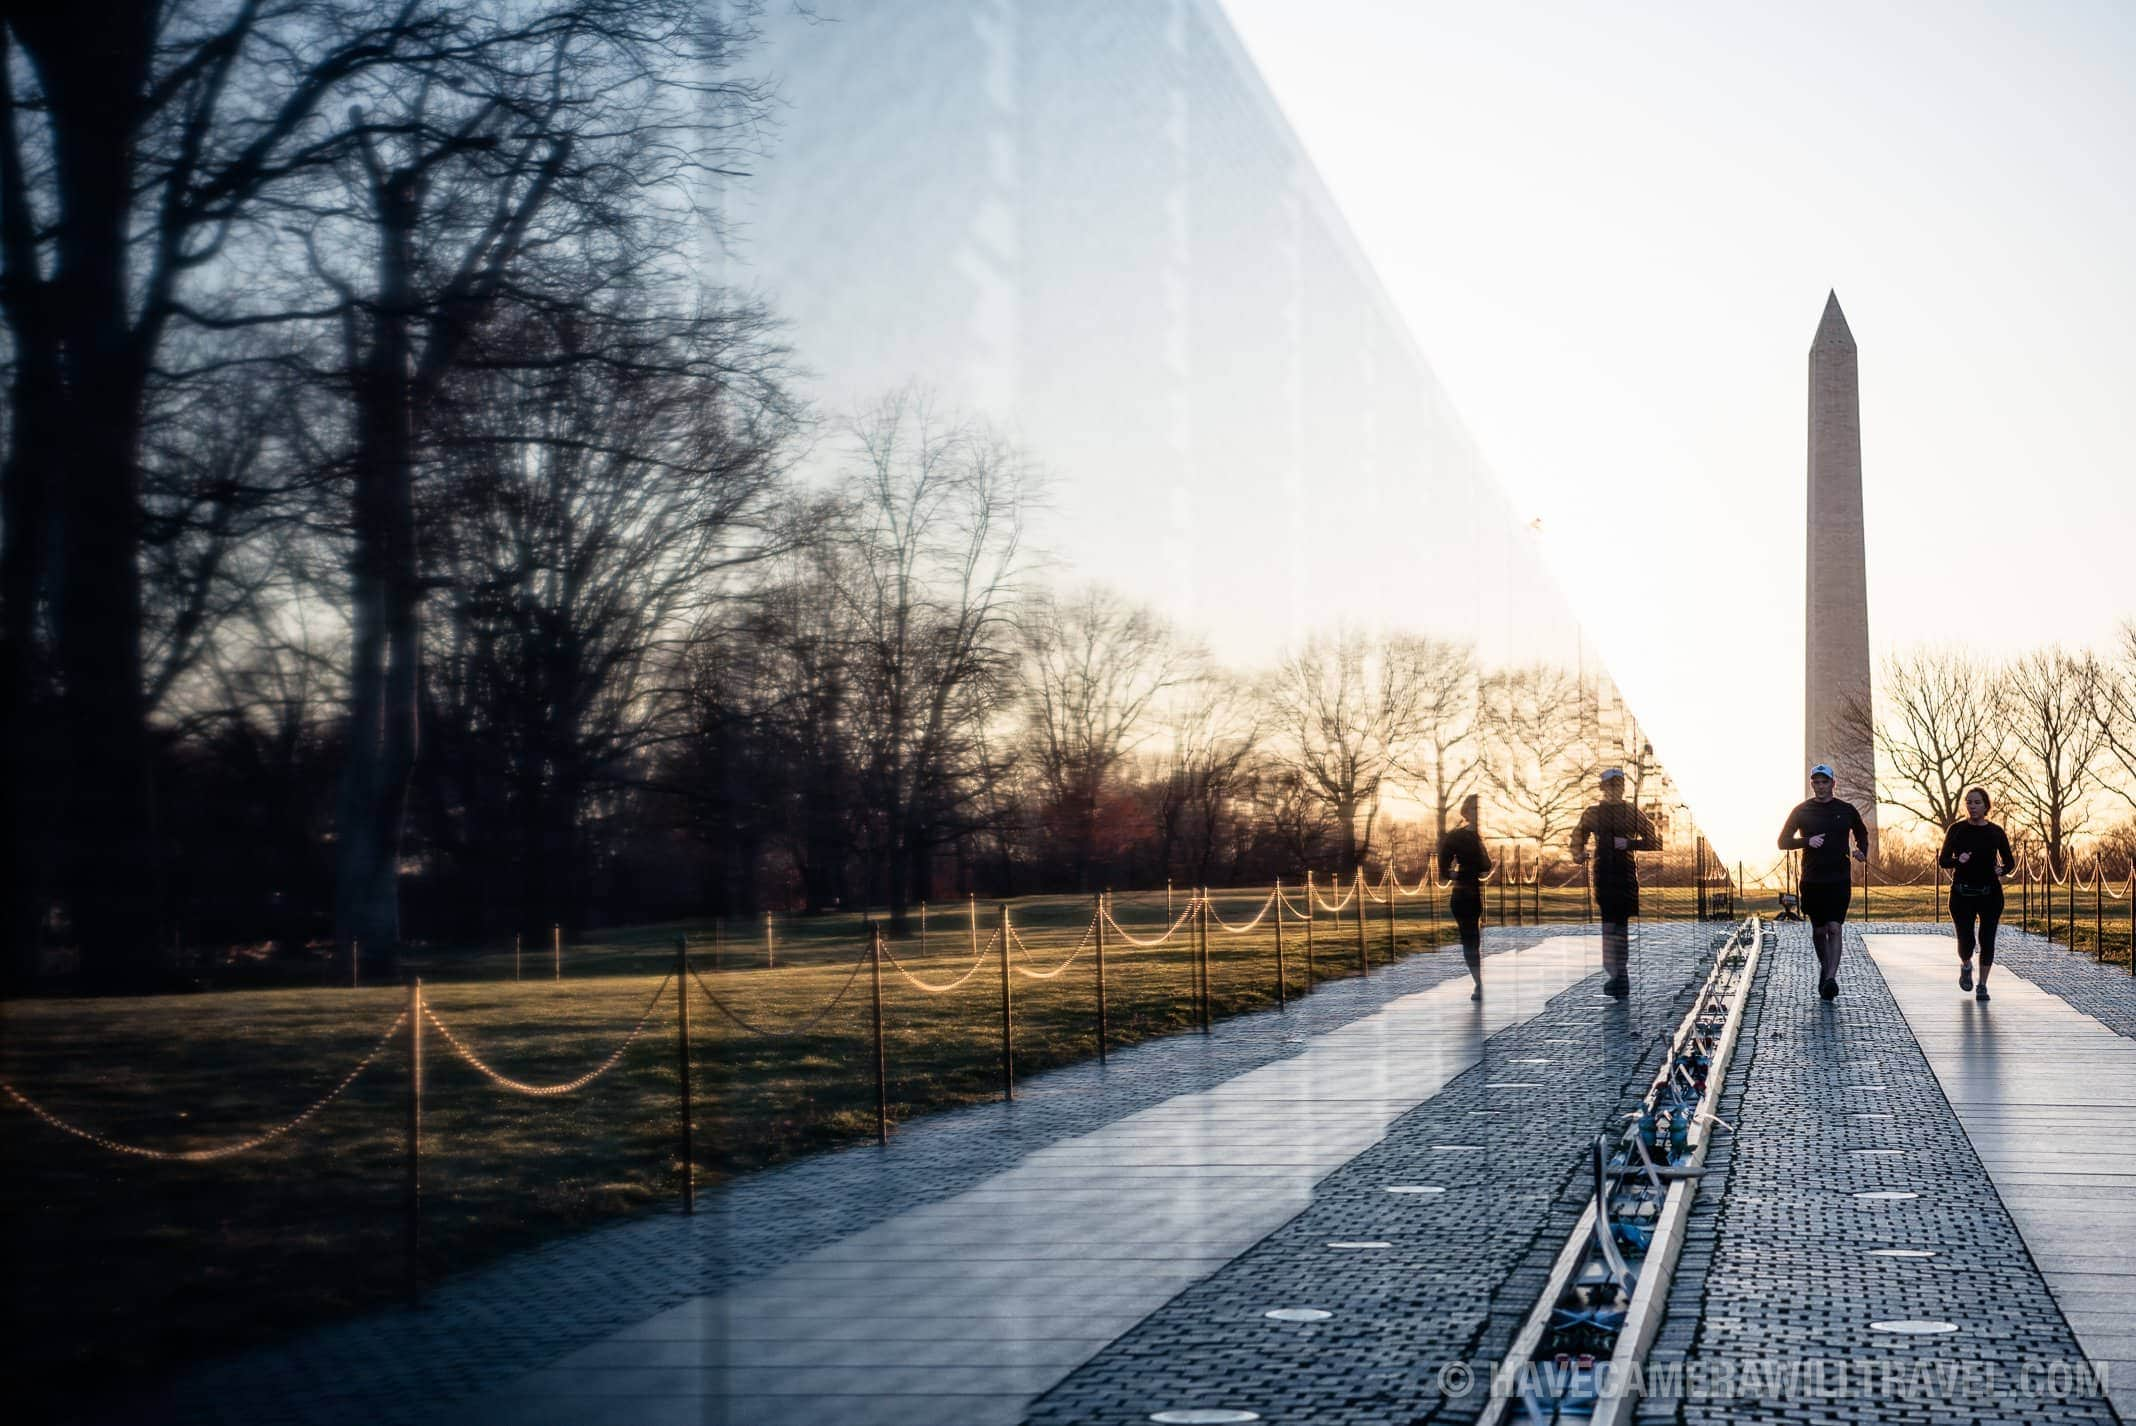 Vietnam Memorial, Washington DC, at Sunrise